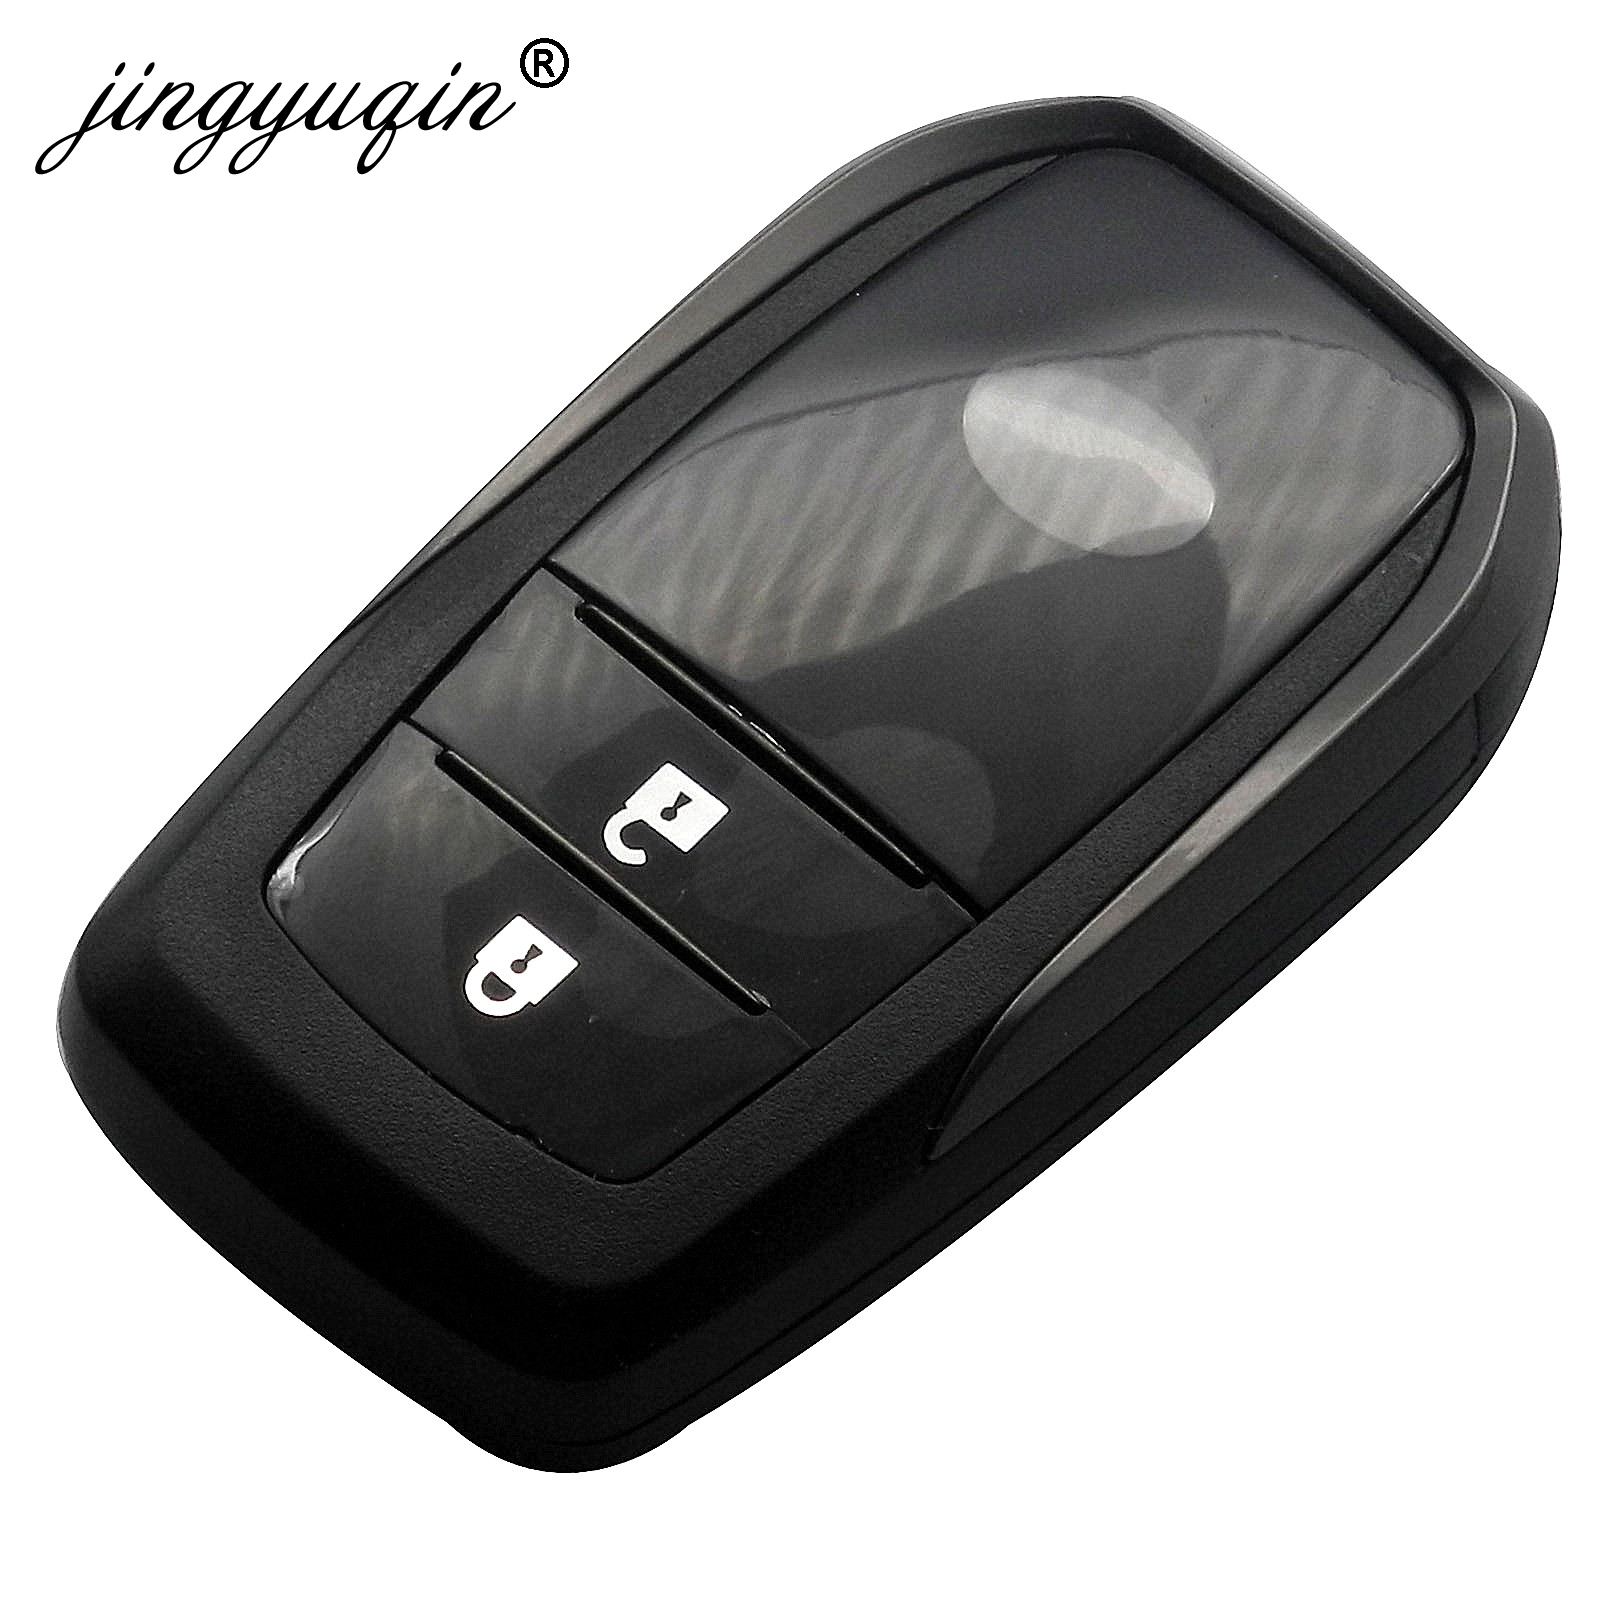 Replacement Smart Remote Key Shell Case Housing 3 Button for Toyota Prius C-HR